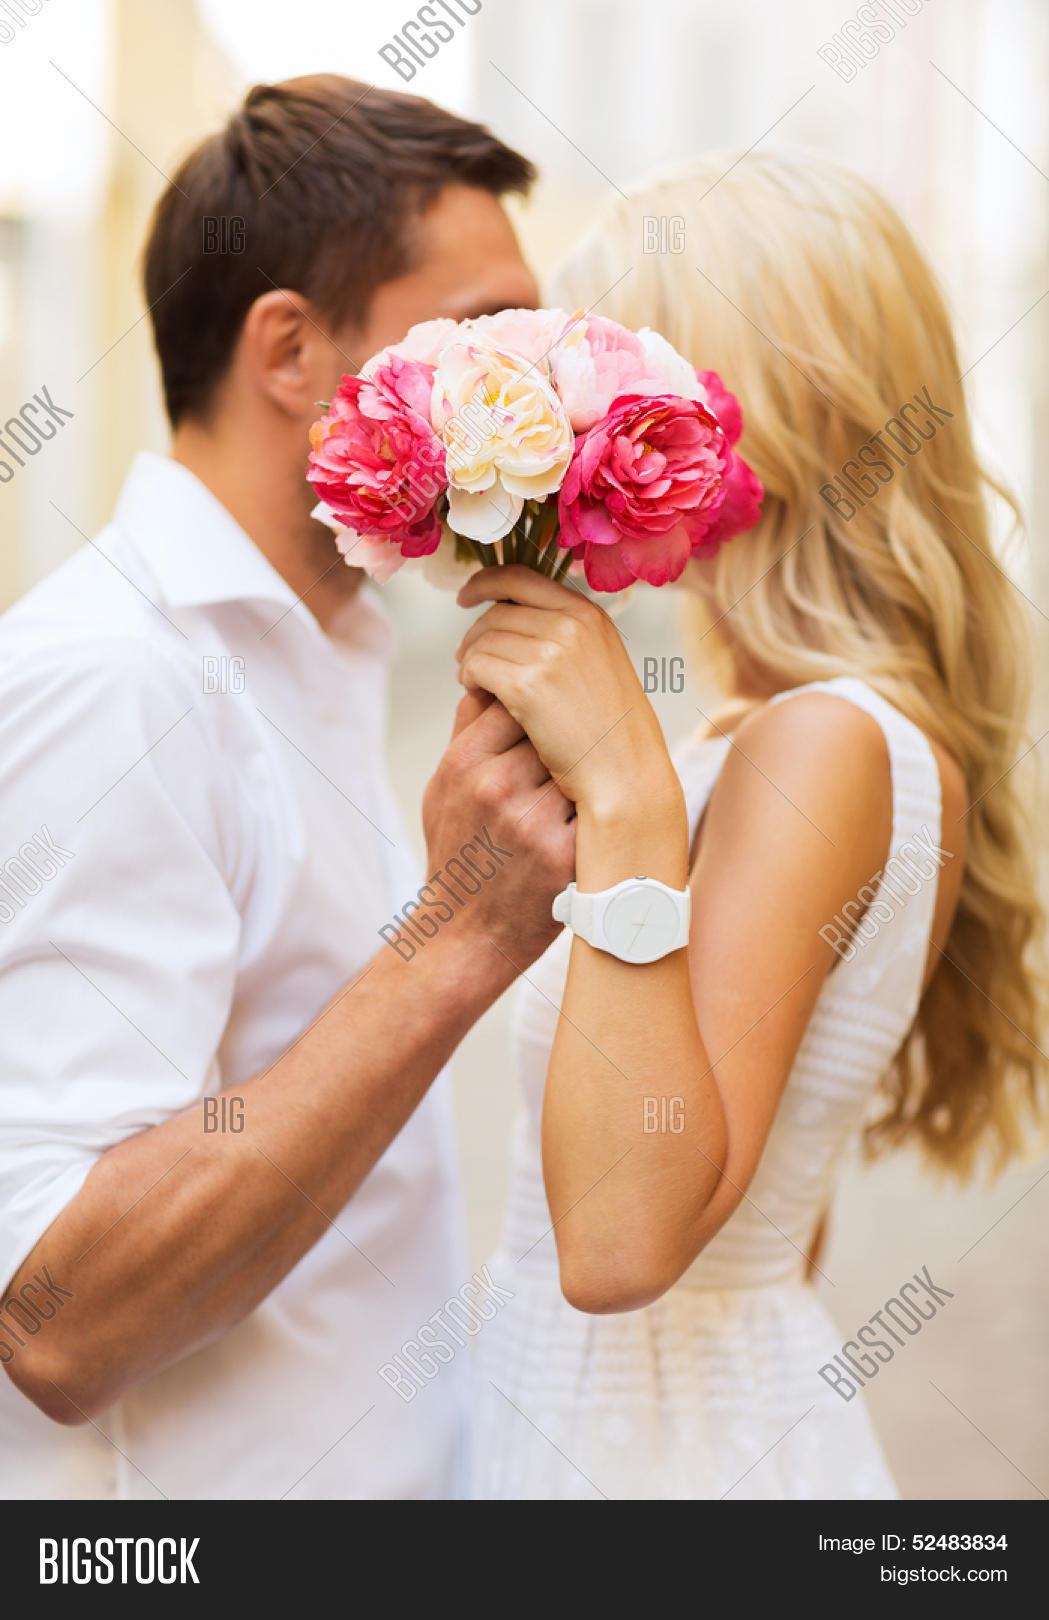 amoureux love free datings